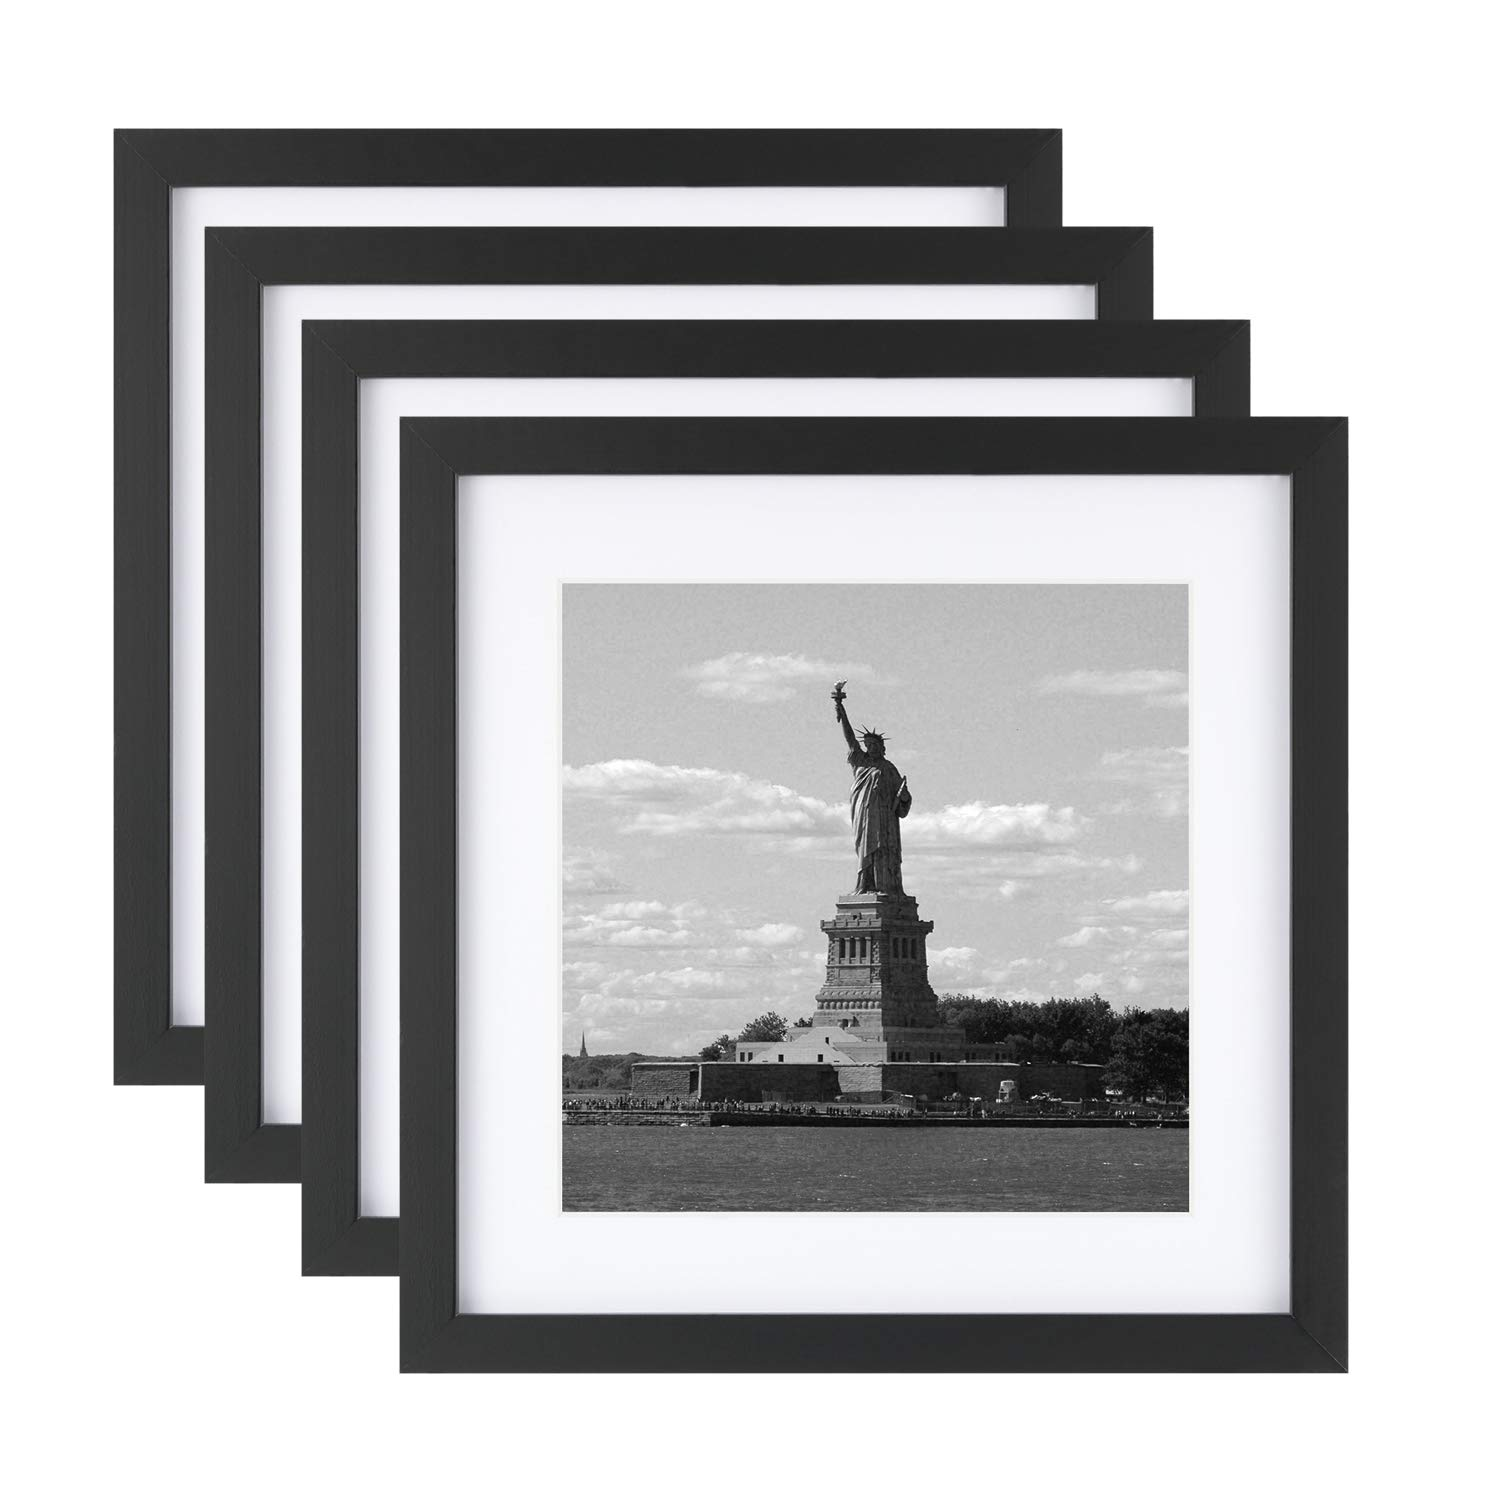 ONE WALL Tempered Glass 4PCS 11x11 Picture Frame with Mats for 8x8 Photo, Black Wood Frame for Wall and Tabletop - Mounting Hardware Included